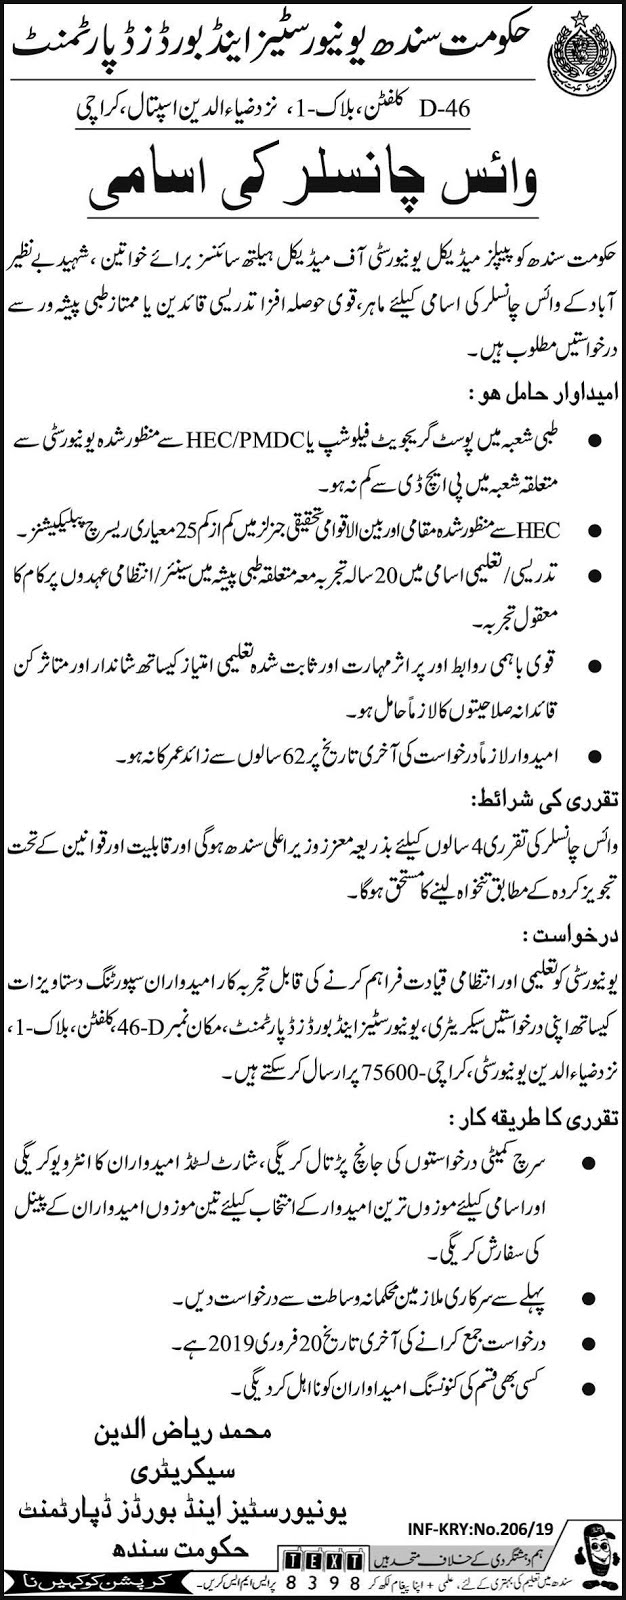 university of engineering and technology taxila,technology,university,engineering,bs civil engineering and tenchnology,bs mechanical engineering and tenchnology,bs electrical engineering and tenchnology,quaid-e-azam college of engineering and technology sahiwal.,kohat university of science & technology kust latest jobs 2018,online jobs in pakistan,lecturer jobs bps 18 in kohat university 2018